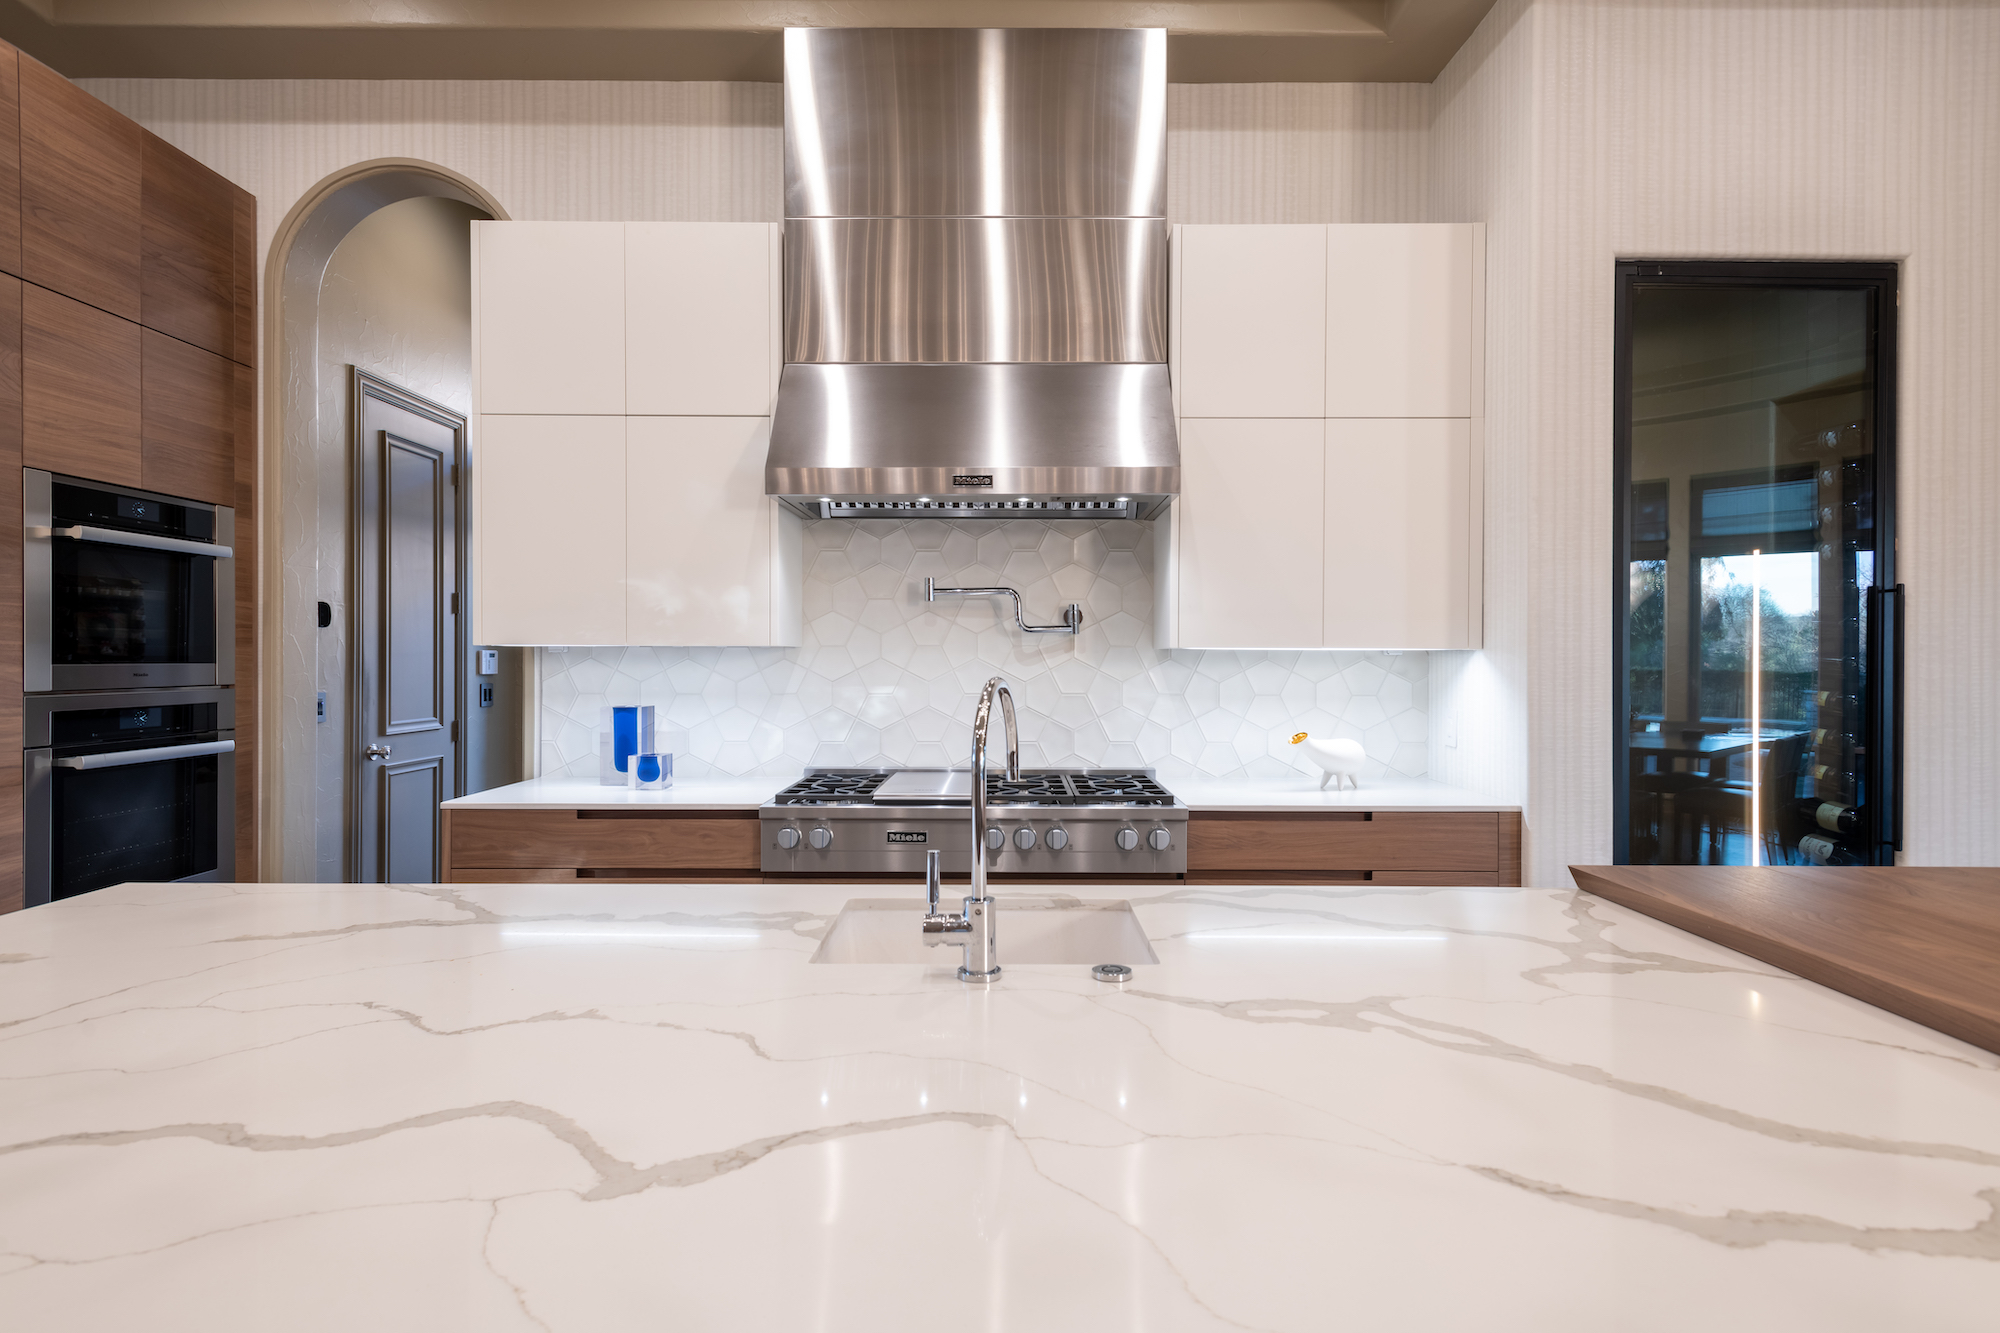 miele appliances in plano kitchen remodel